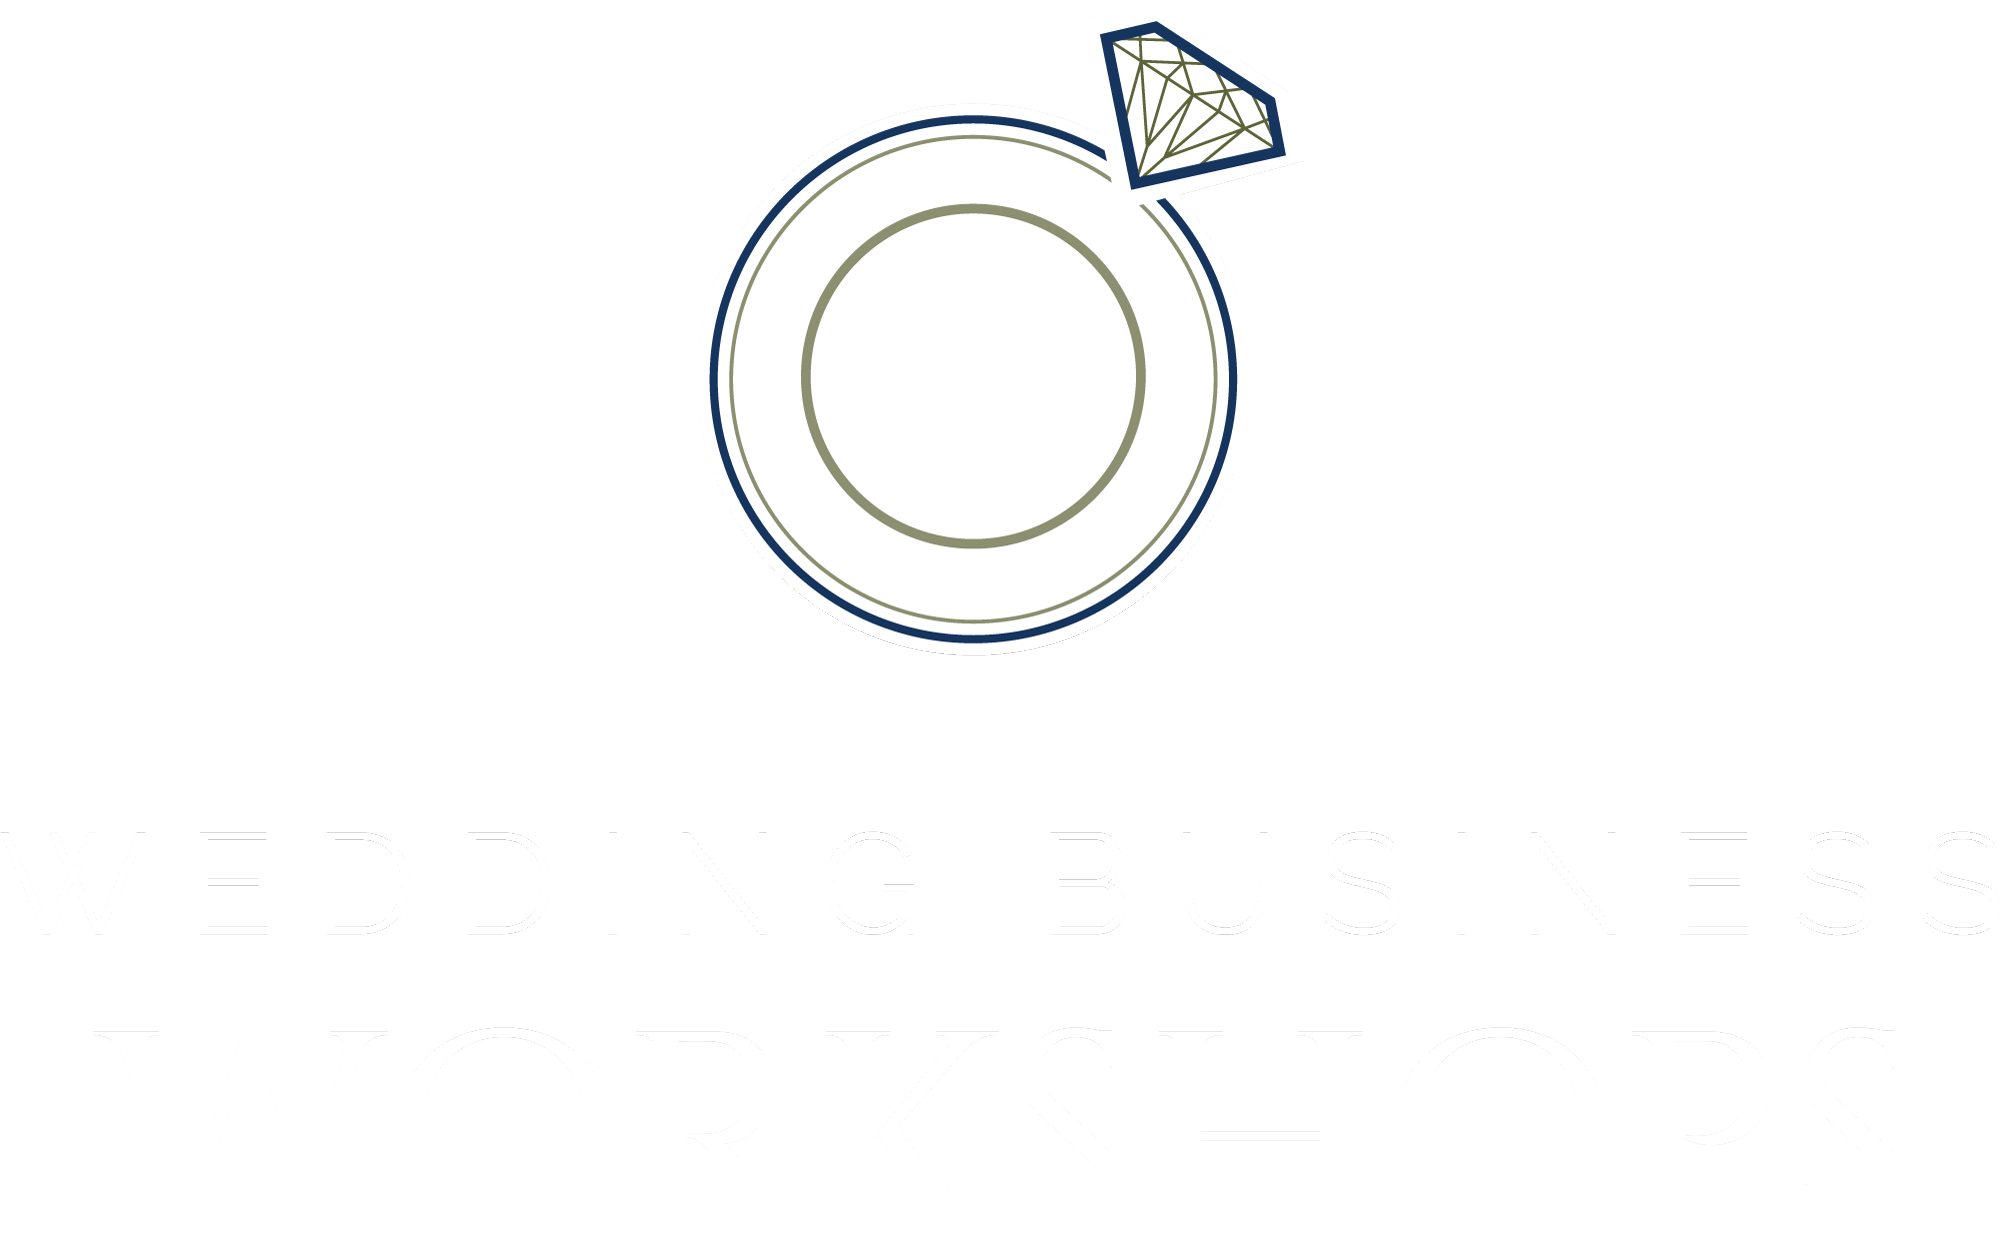 Wedding Business Workshops